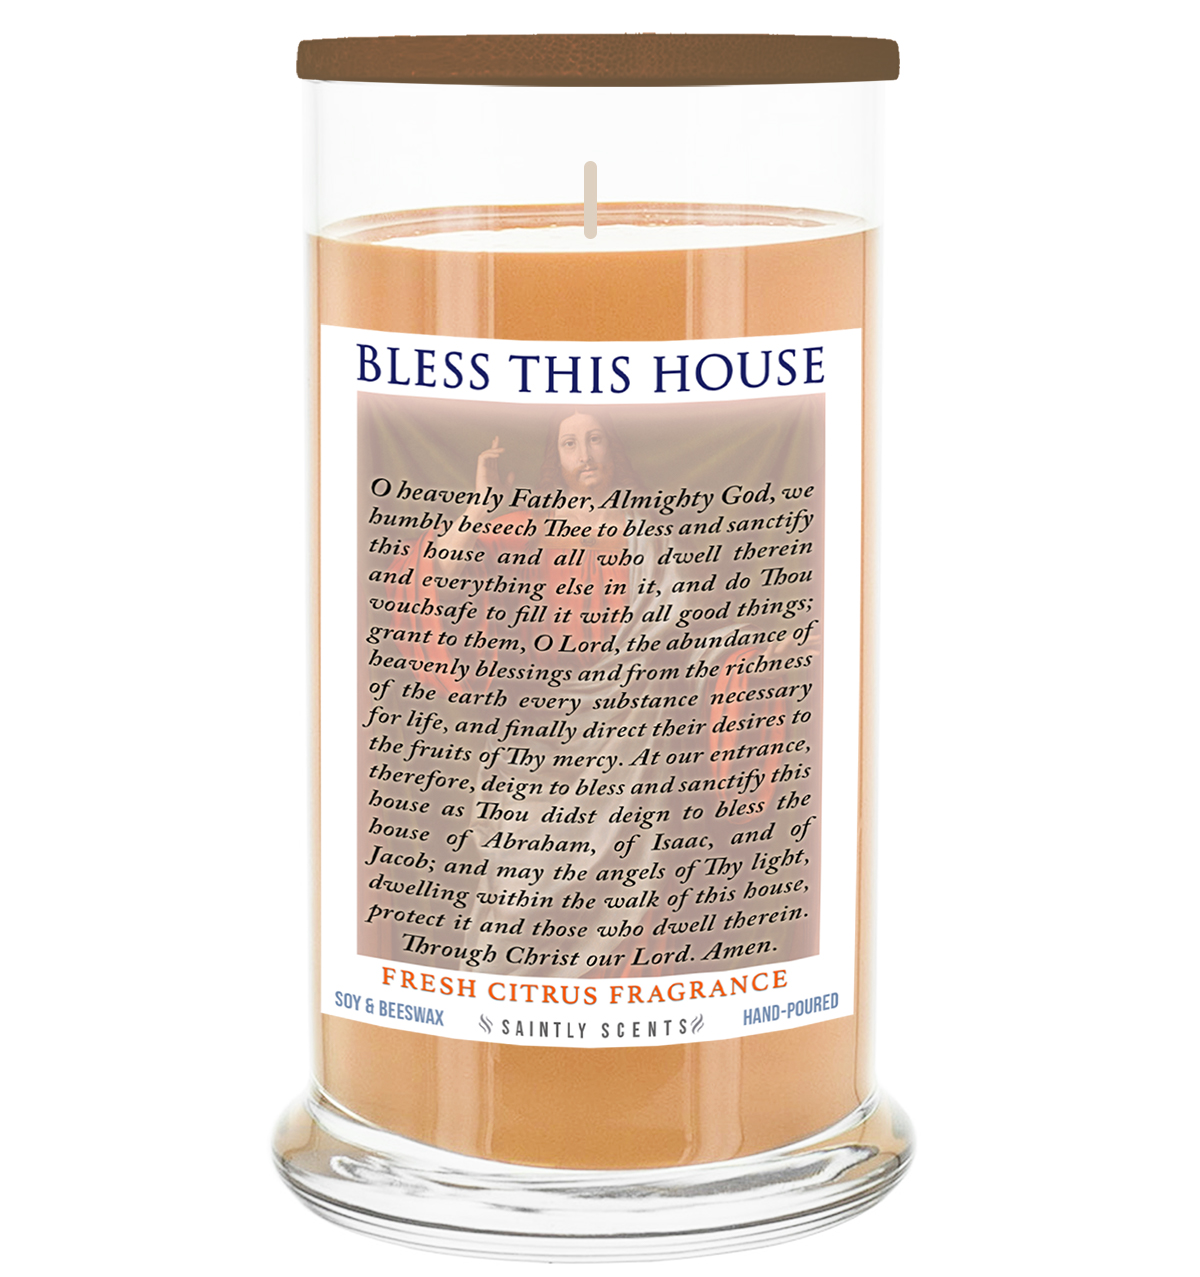 Bless This House Scented Prayer Candle - Fresh